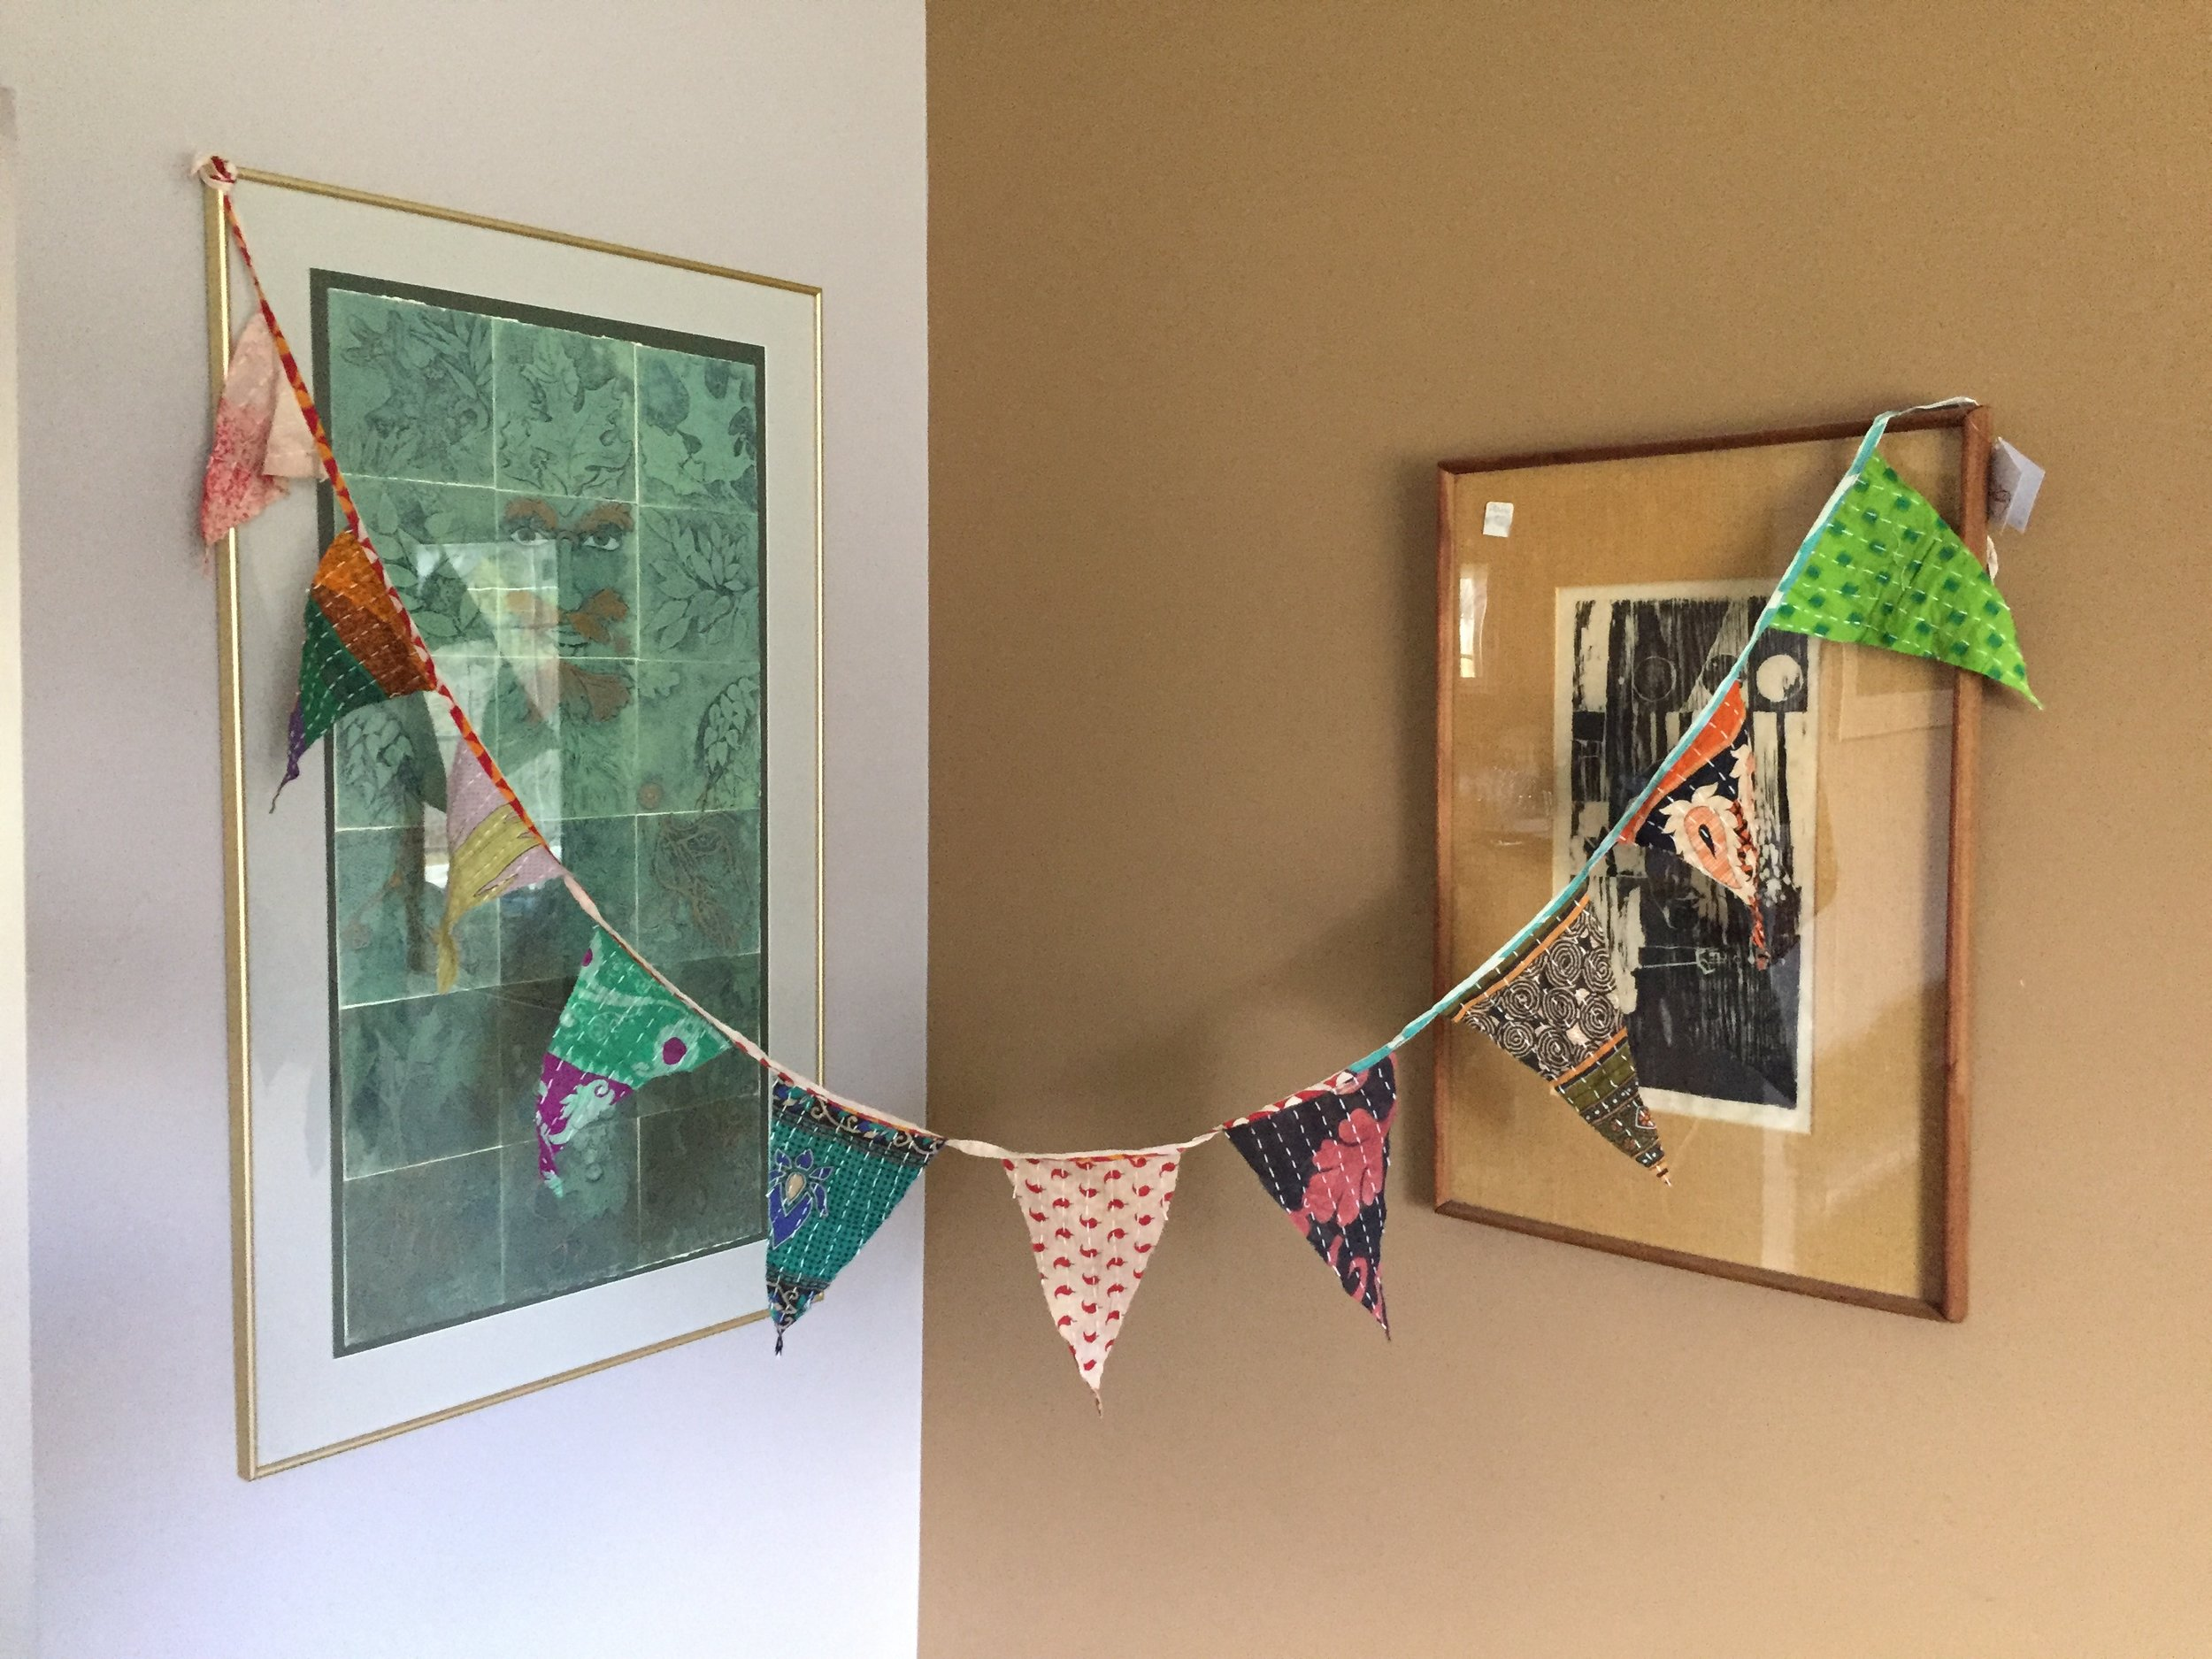 New item! Kantha bunting (pennant) for home or camp!  2 in my Etsy shop, 1 in my local retail space. So fun!  So bohemian!